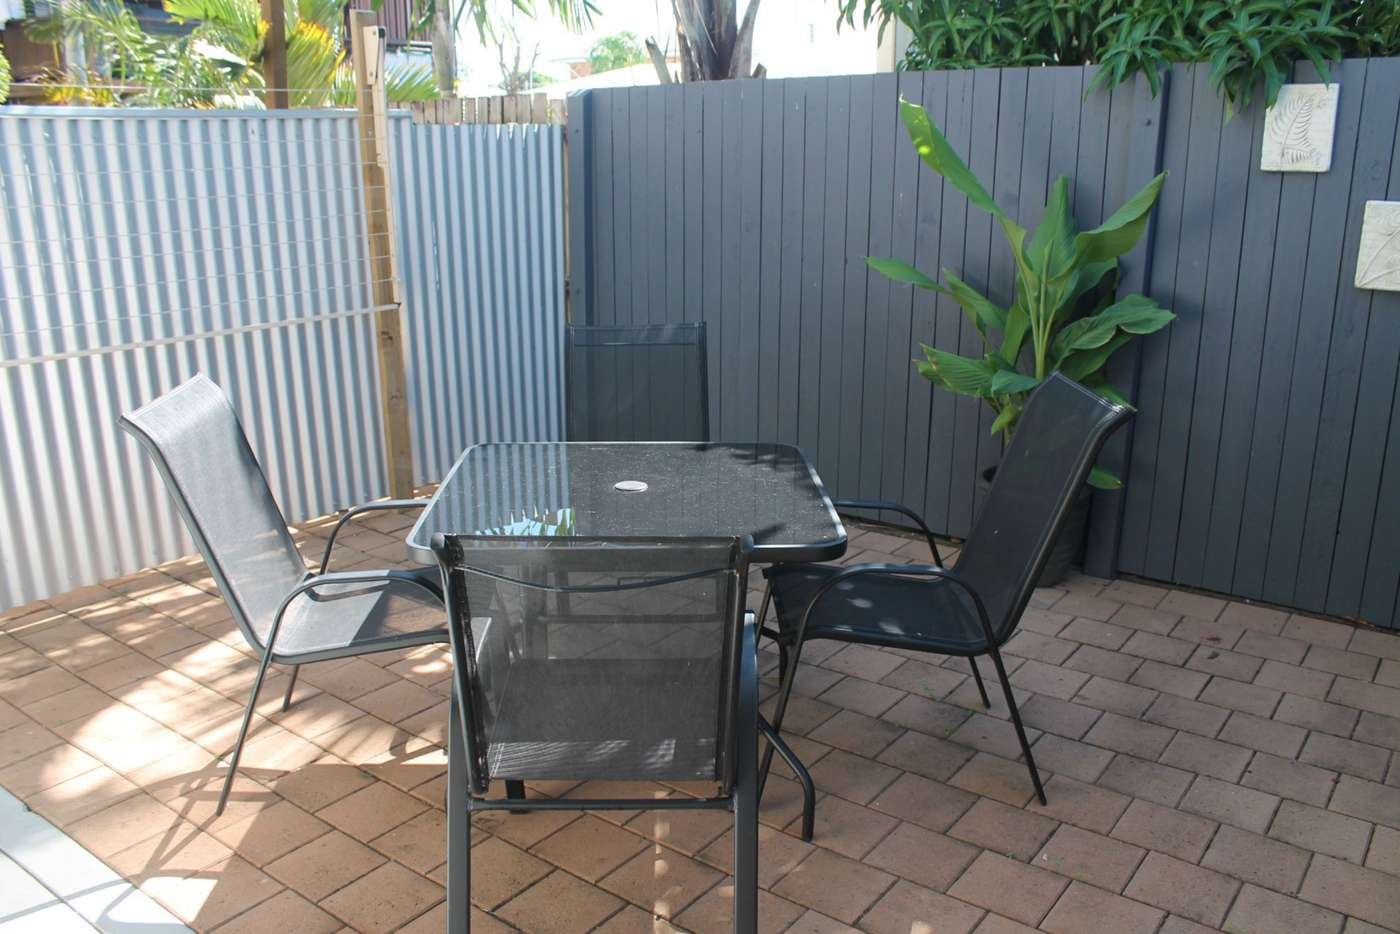 Seventh view of Homely unit listing, 10/331 Shakespeare Street, Mackay QLD 4740